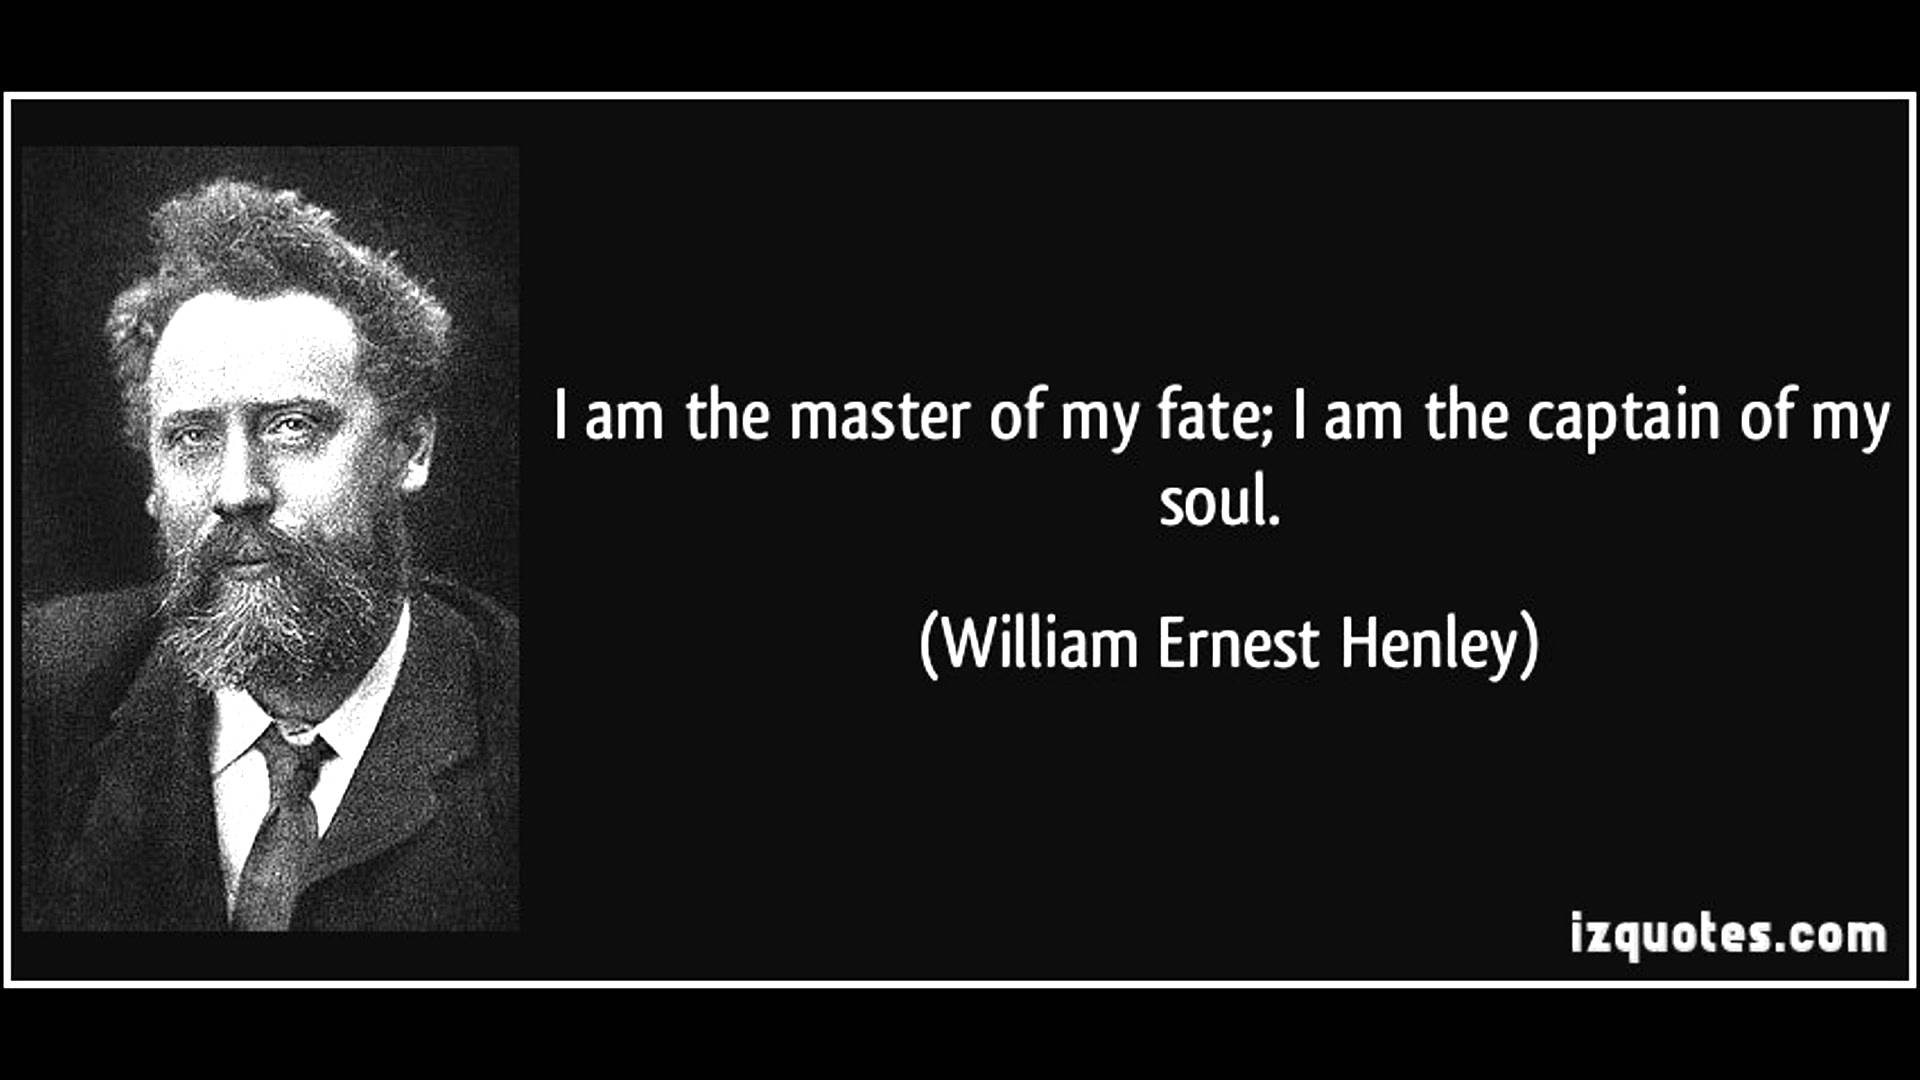 "invictus william ernest henley ""invictus"" was written when henley was in the hospital being treated for tuberculosis of the bone, also known as pott's disease the poem is about showing undivided courage in the face of death and keeping the dignity against all the hardships in life."